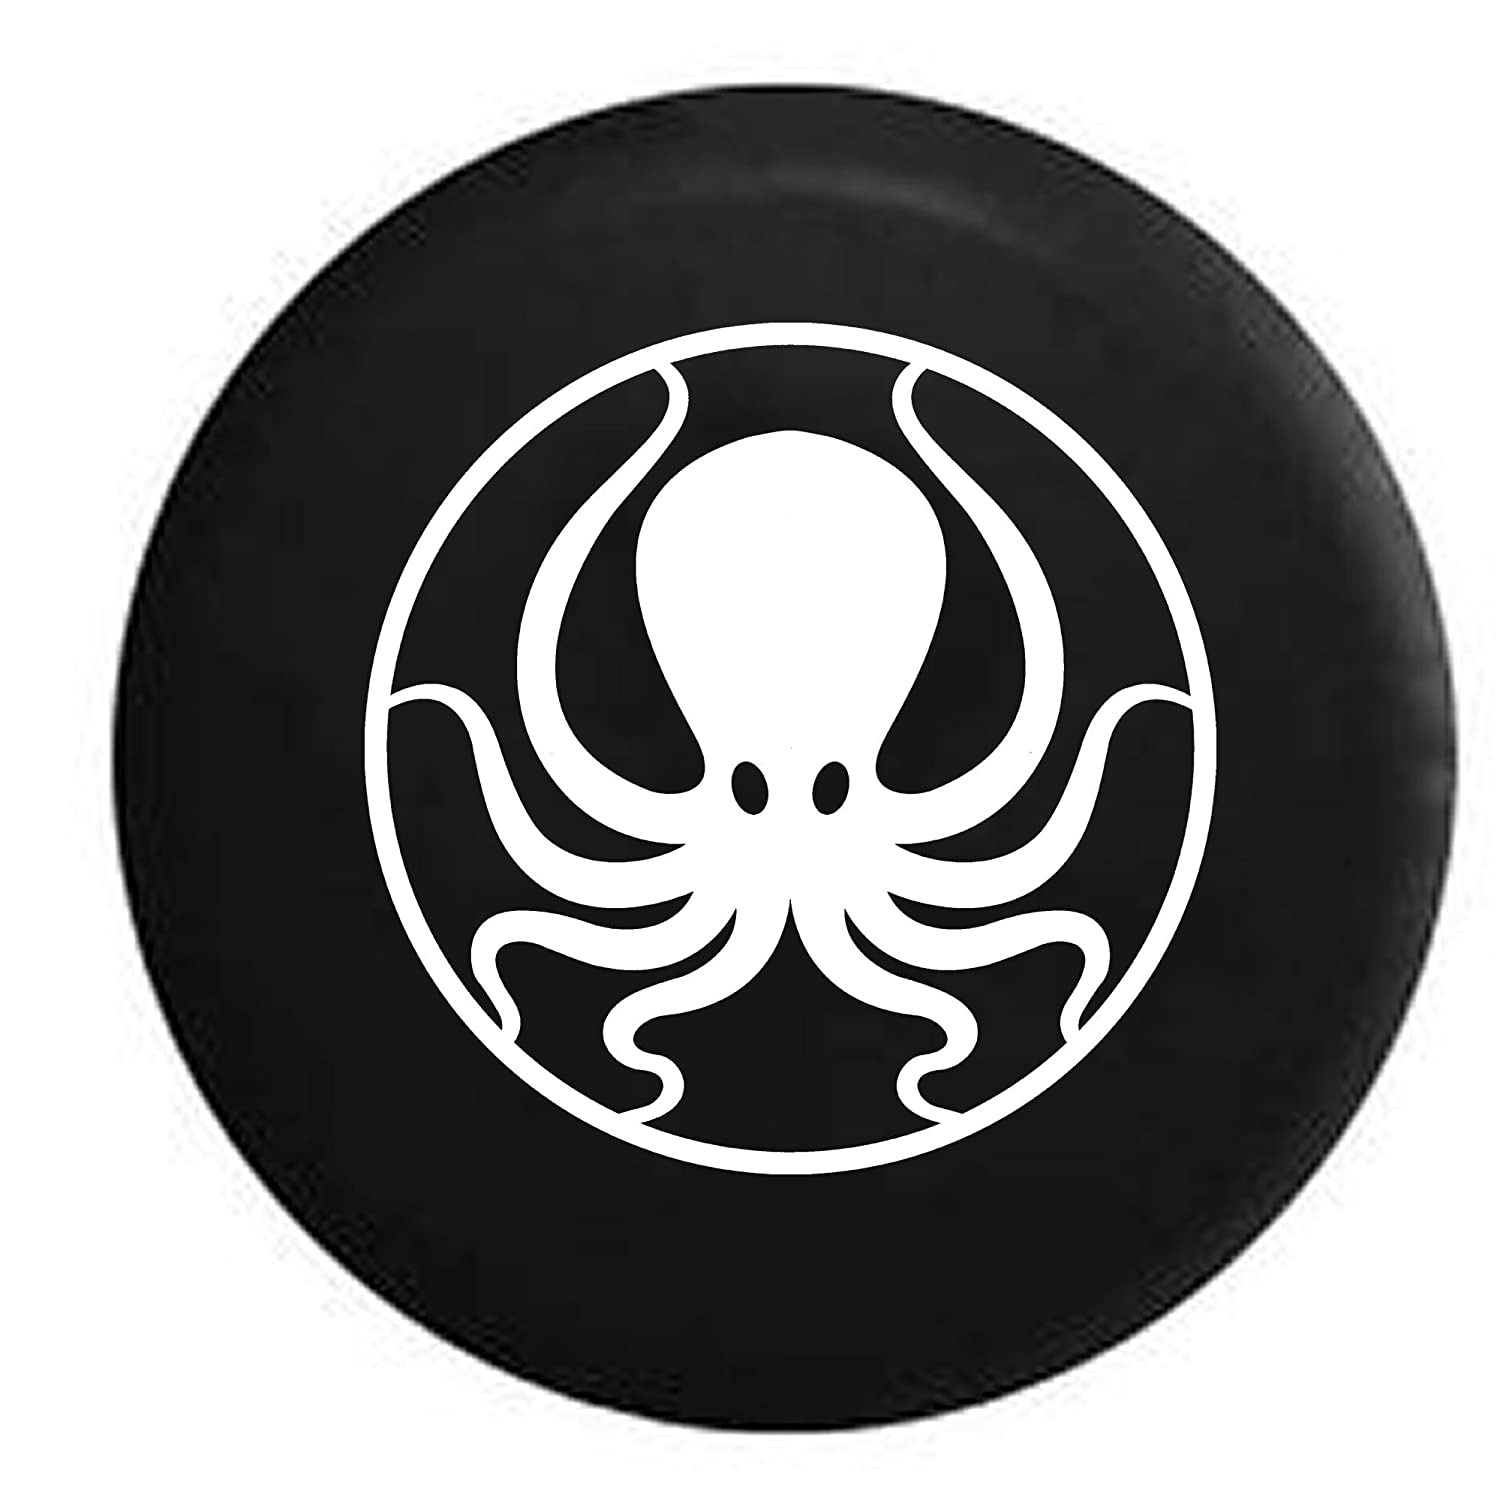 Octopus Kraken Squid Sea Ocean Life Jeep 4x4 Spare Tire Cover OEM Vinyl Black 32-33 in American Unlimited Gear 4350443501